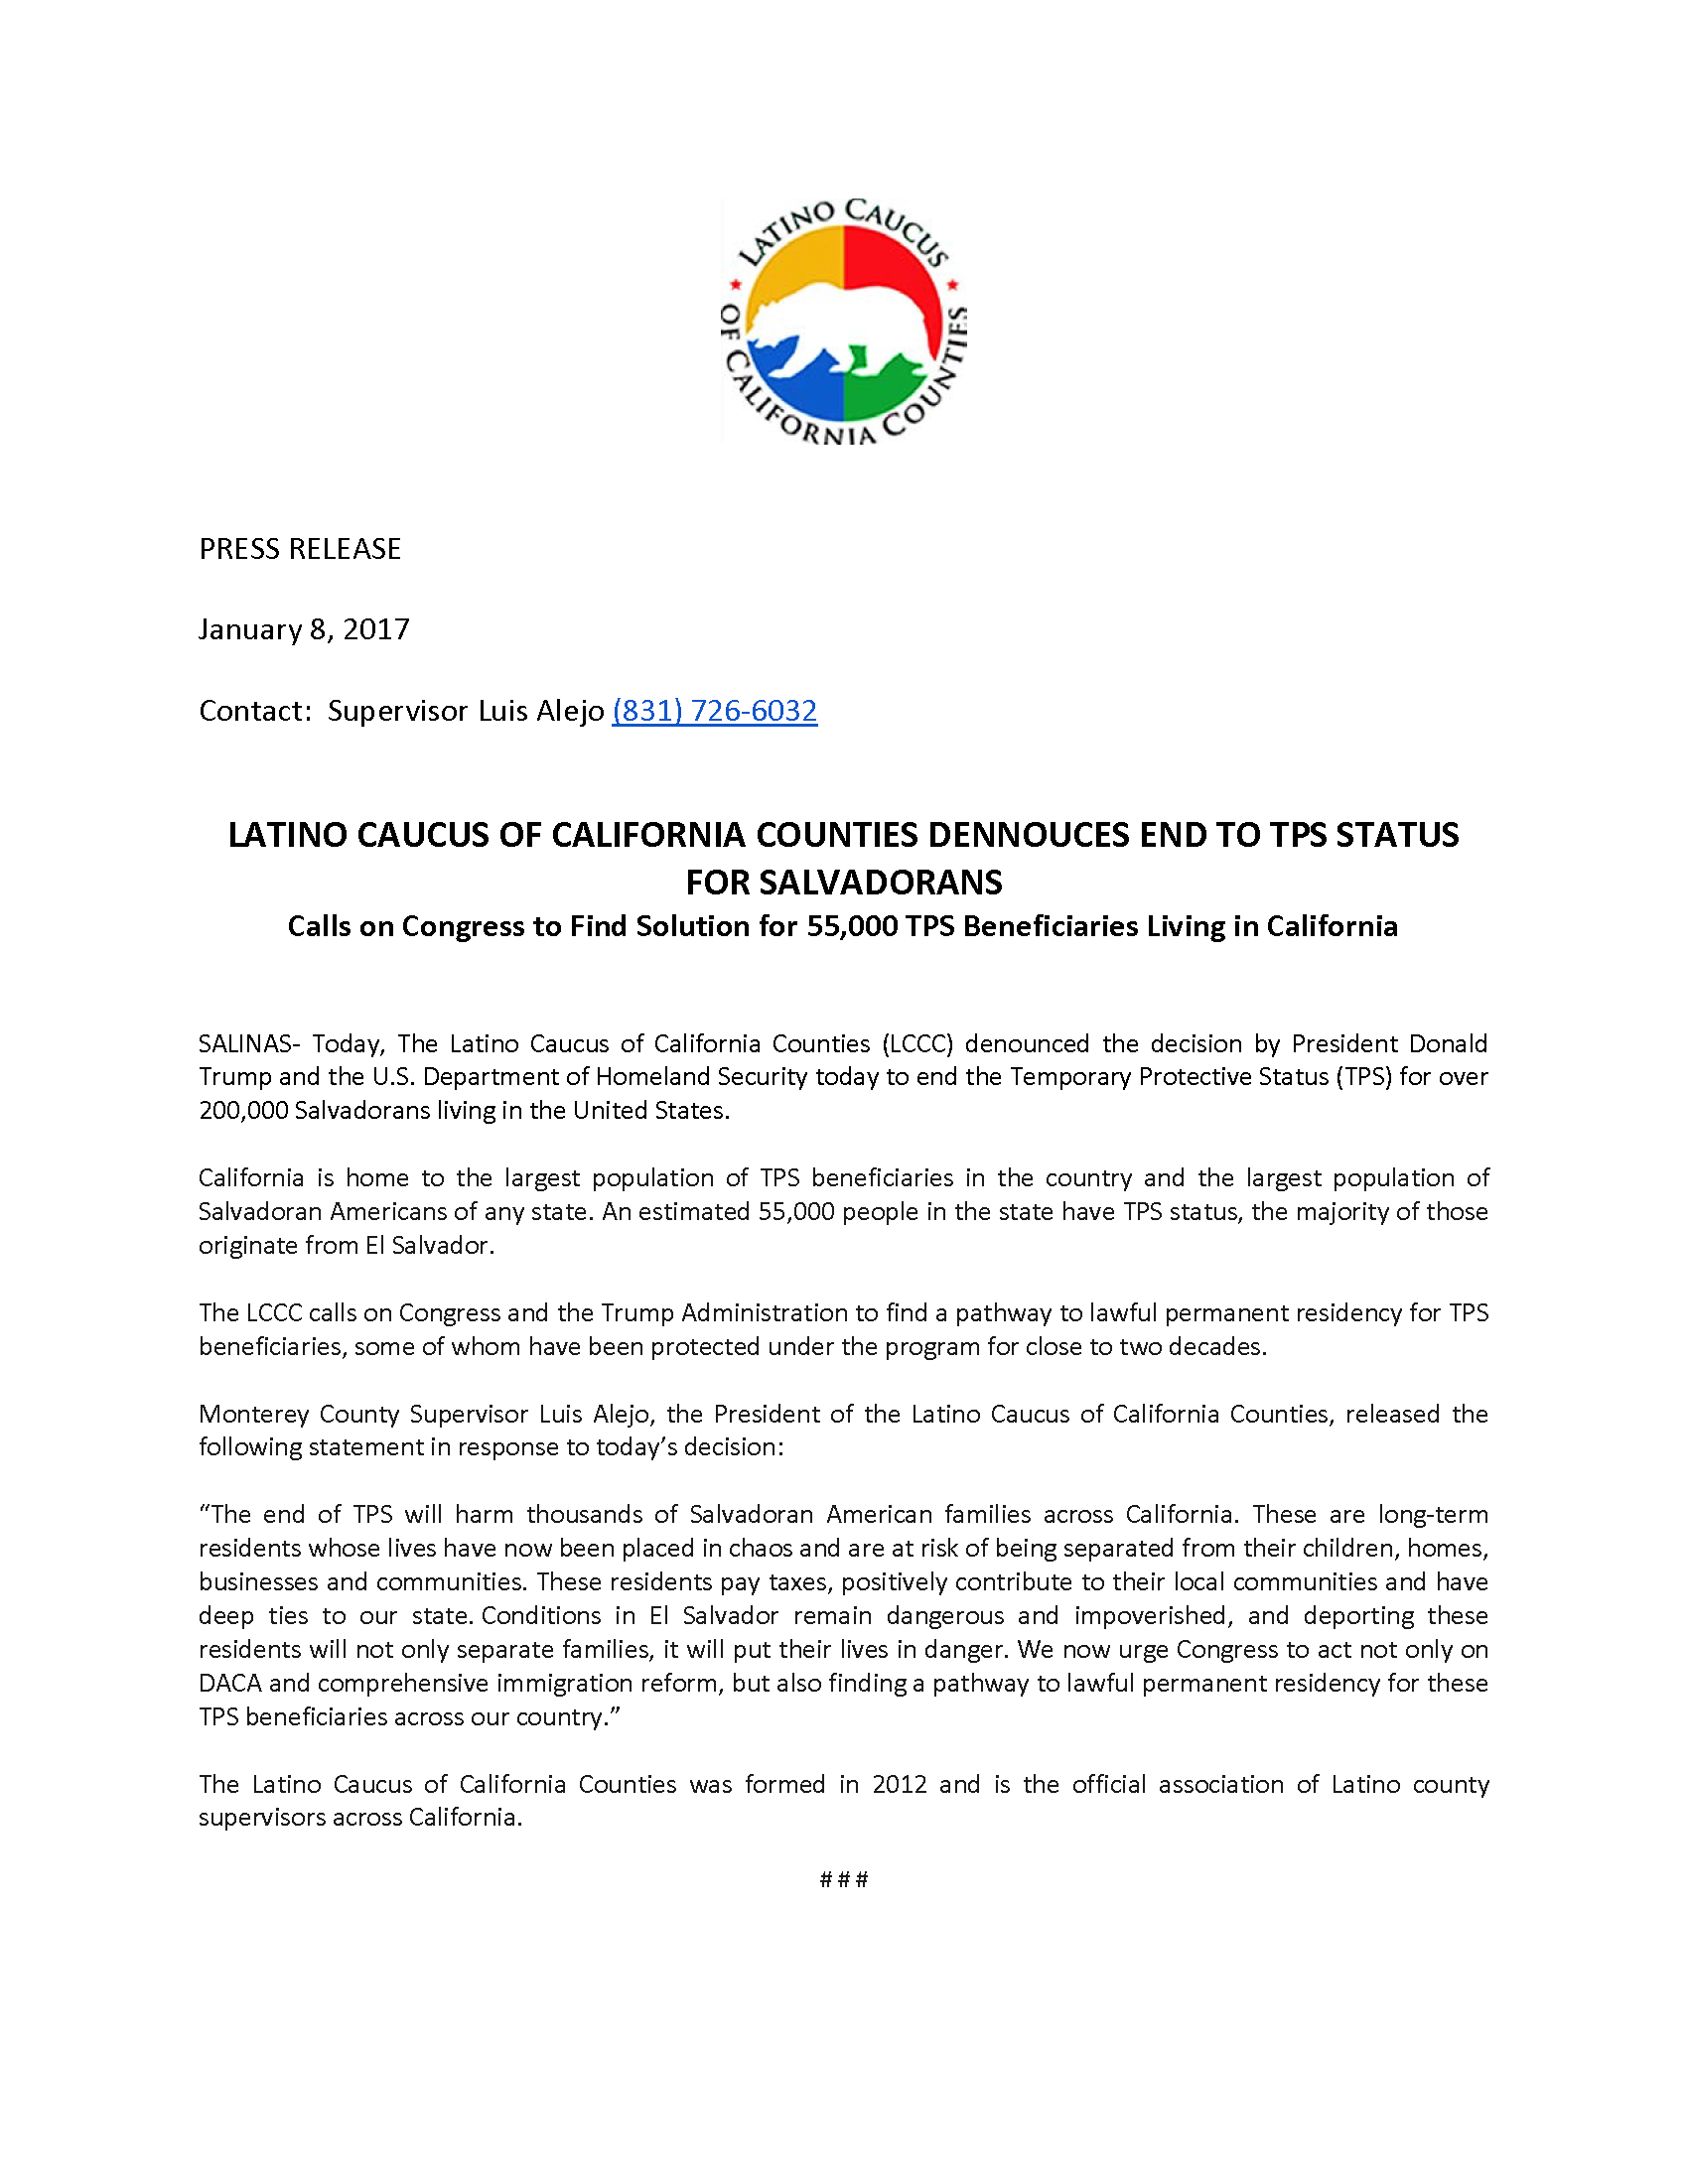 PRESS RELEASE- LCCC on TPS  Status.png